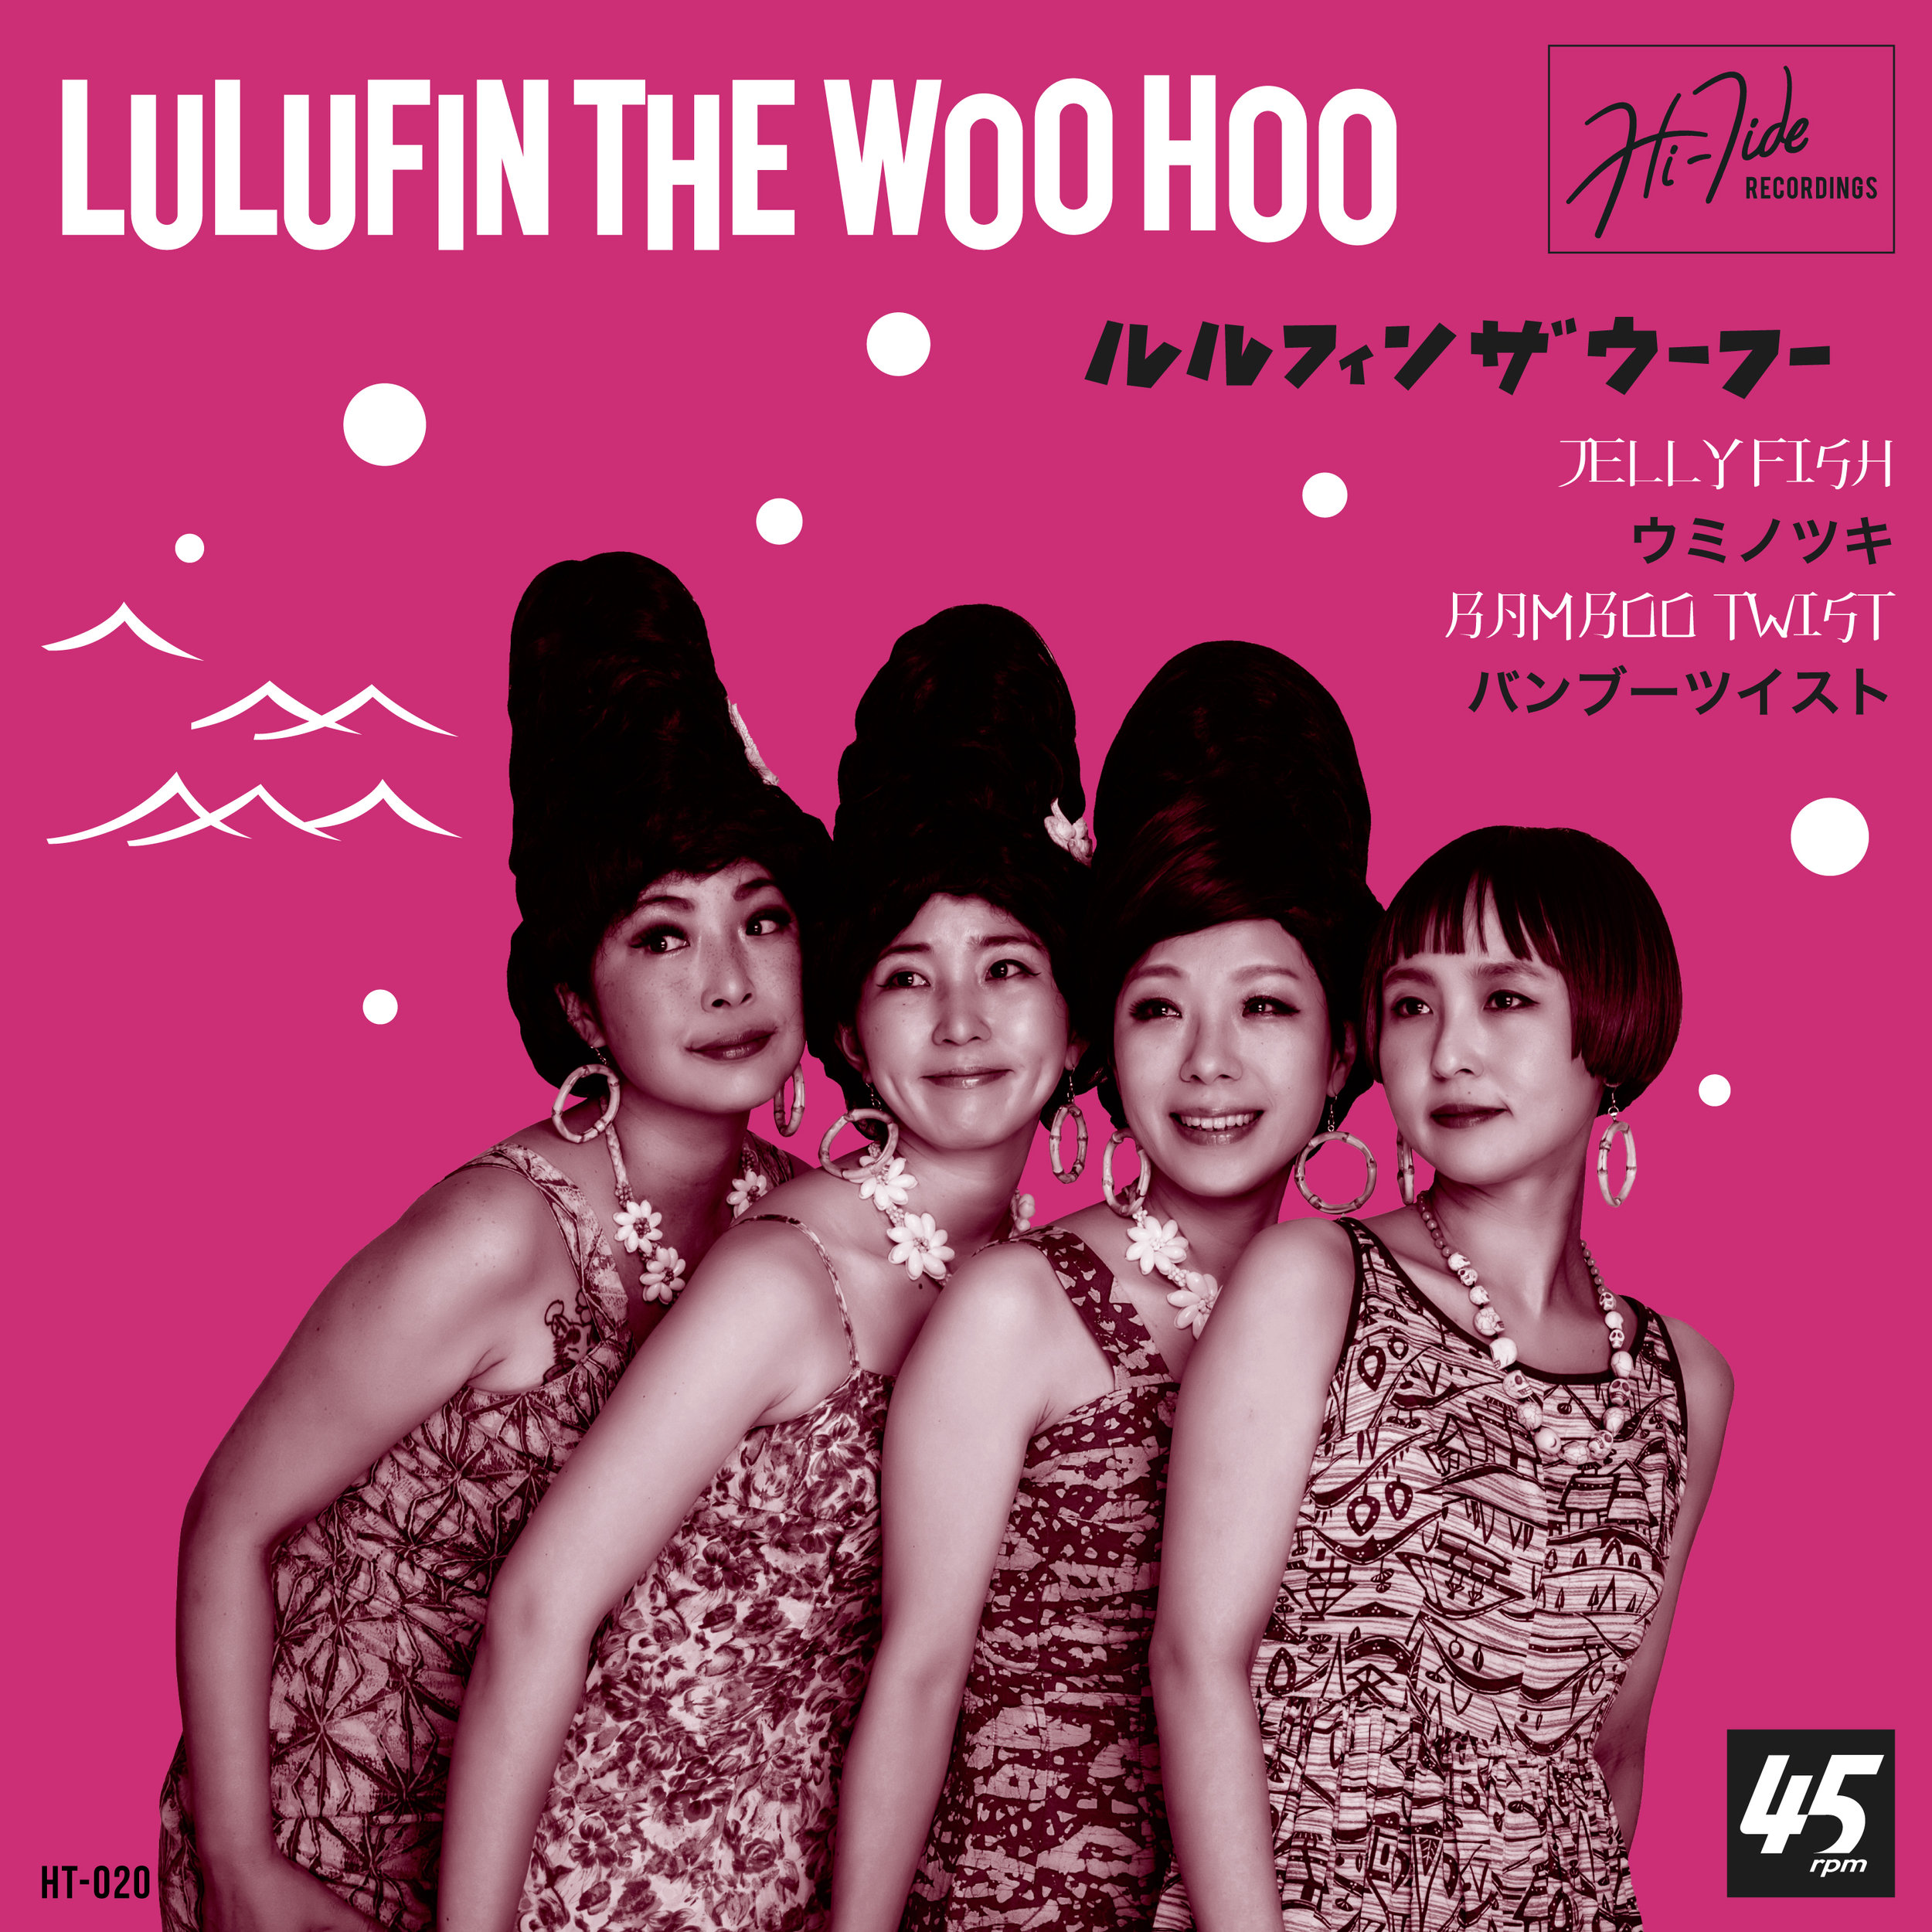 "LULUFIN THE WOO HOO  ""Jellyfish / Bamboo Twist"" - Single (HT-020) Format: 7"" Vinyl, Digital"